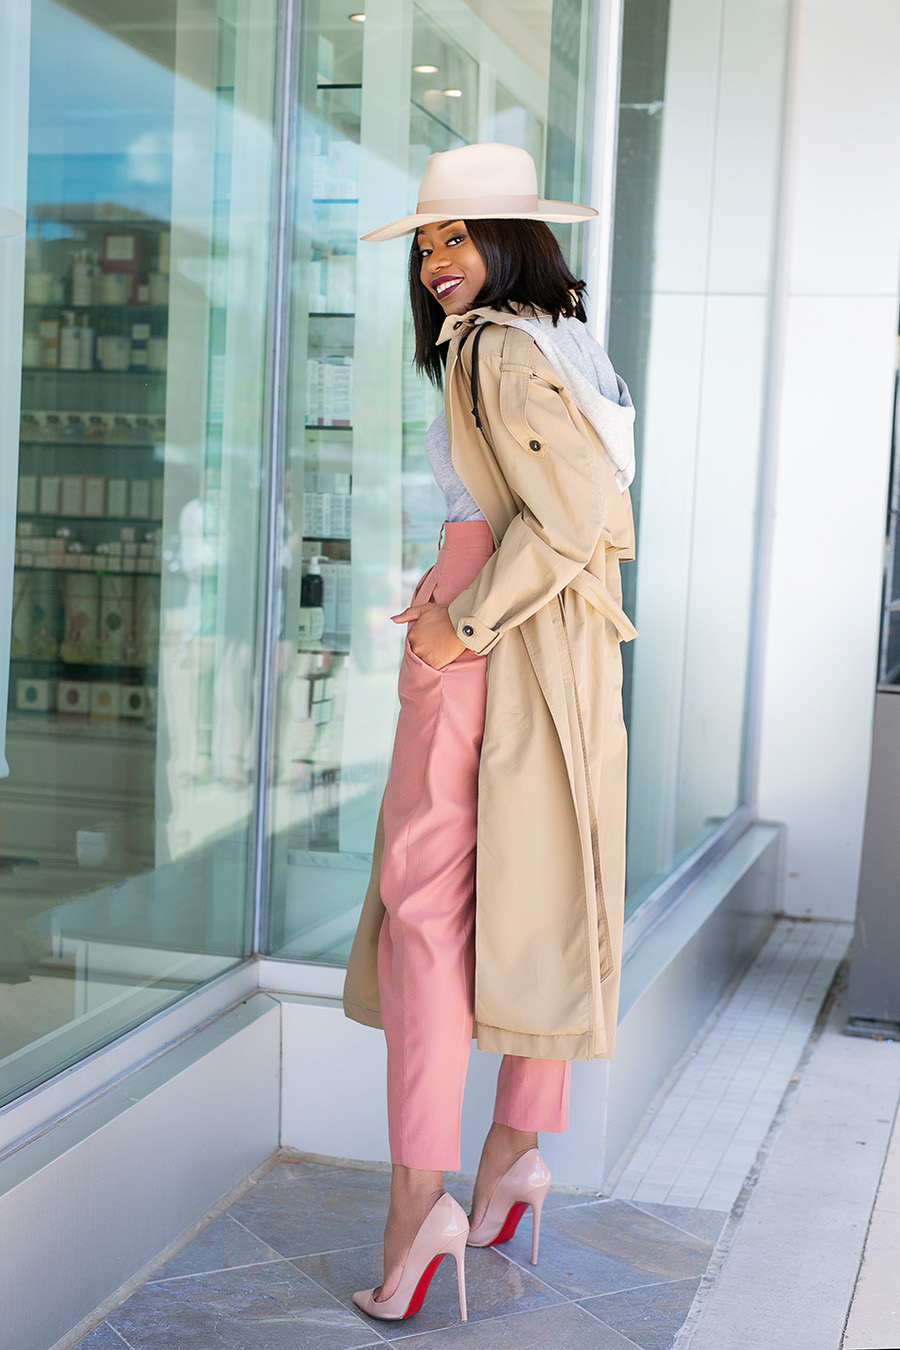 stella-adewunmi-of-jadore-fashion-shares-zara-trench-coat-wool-hat-for-fall-work-style